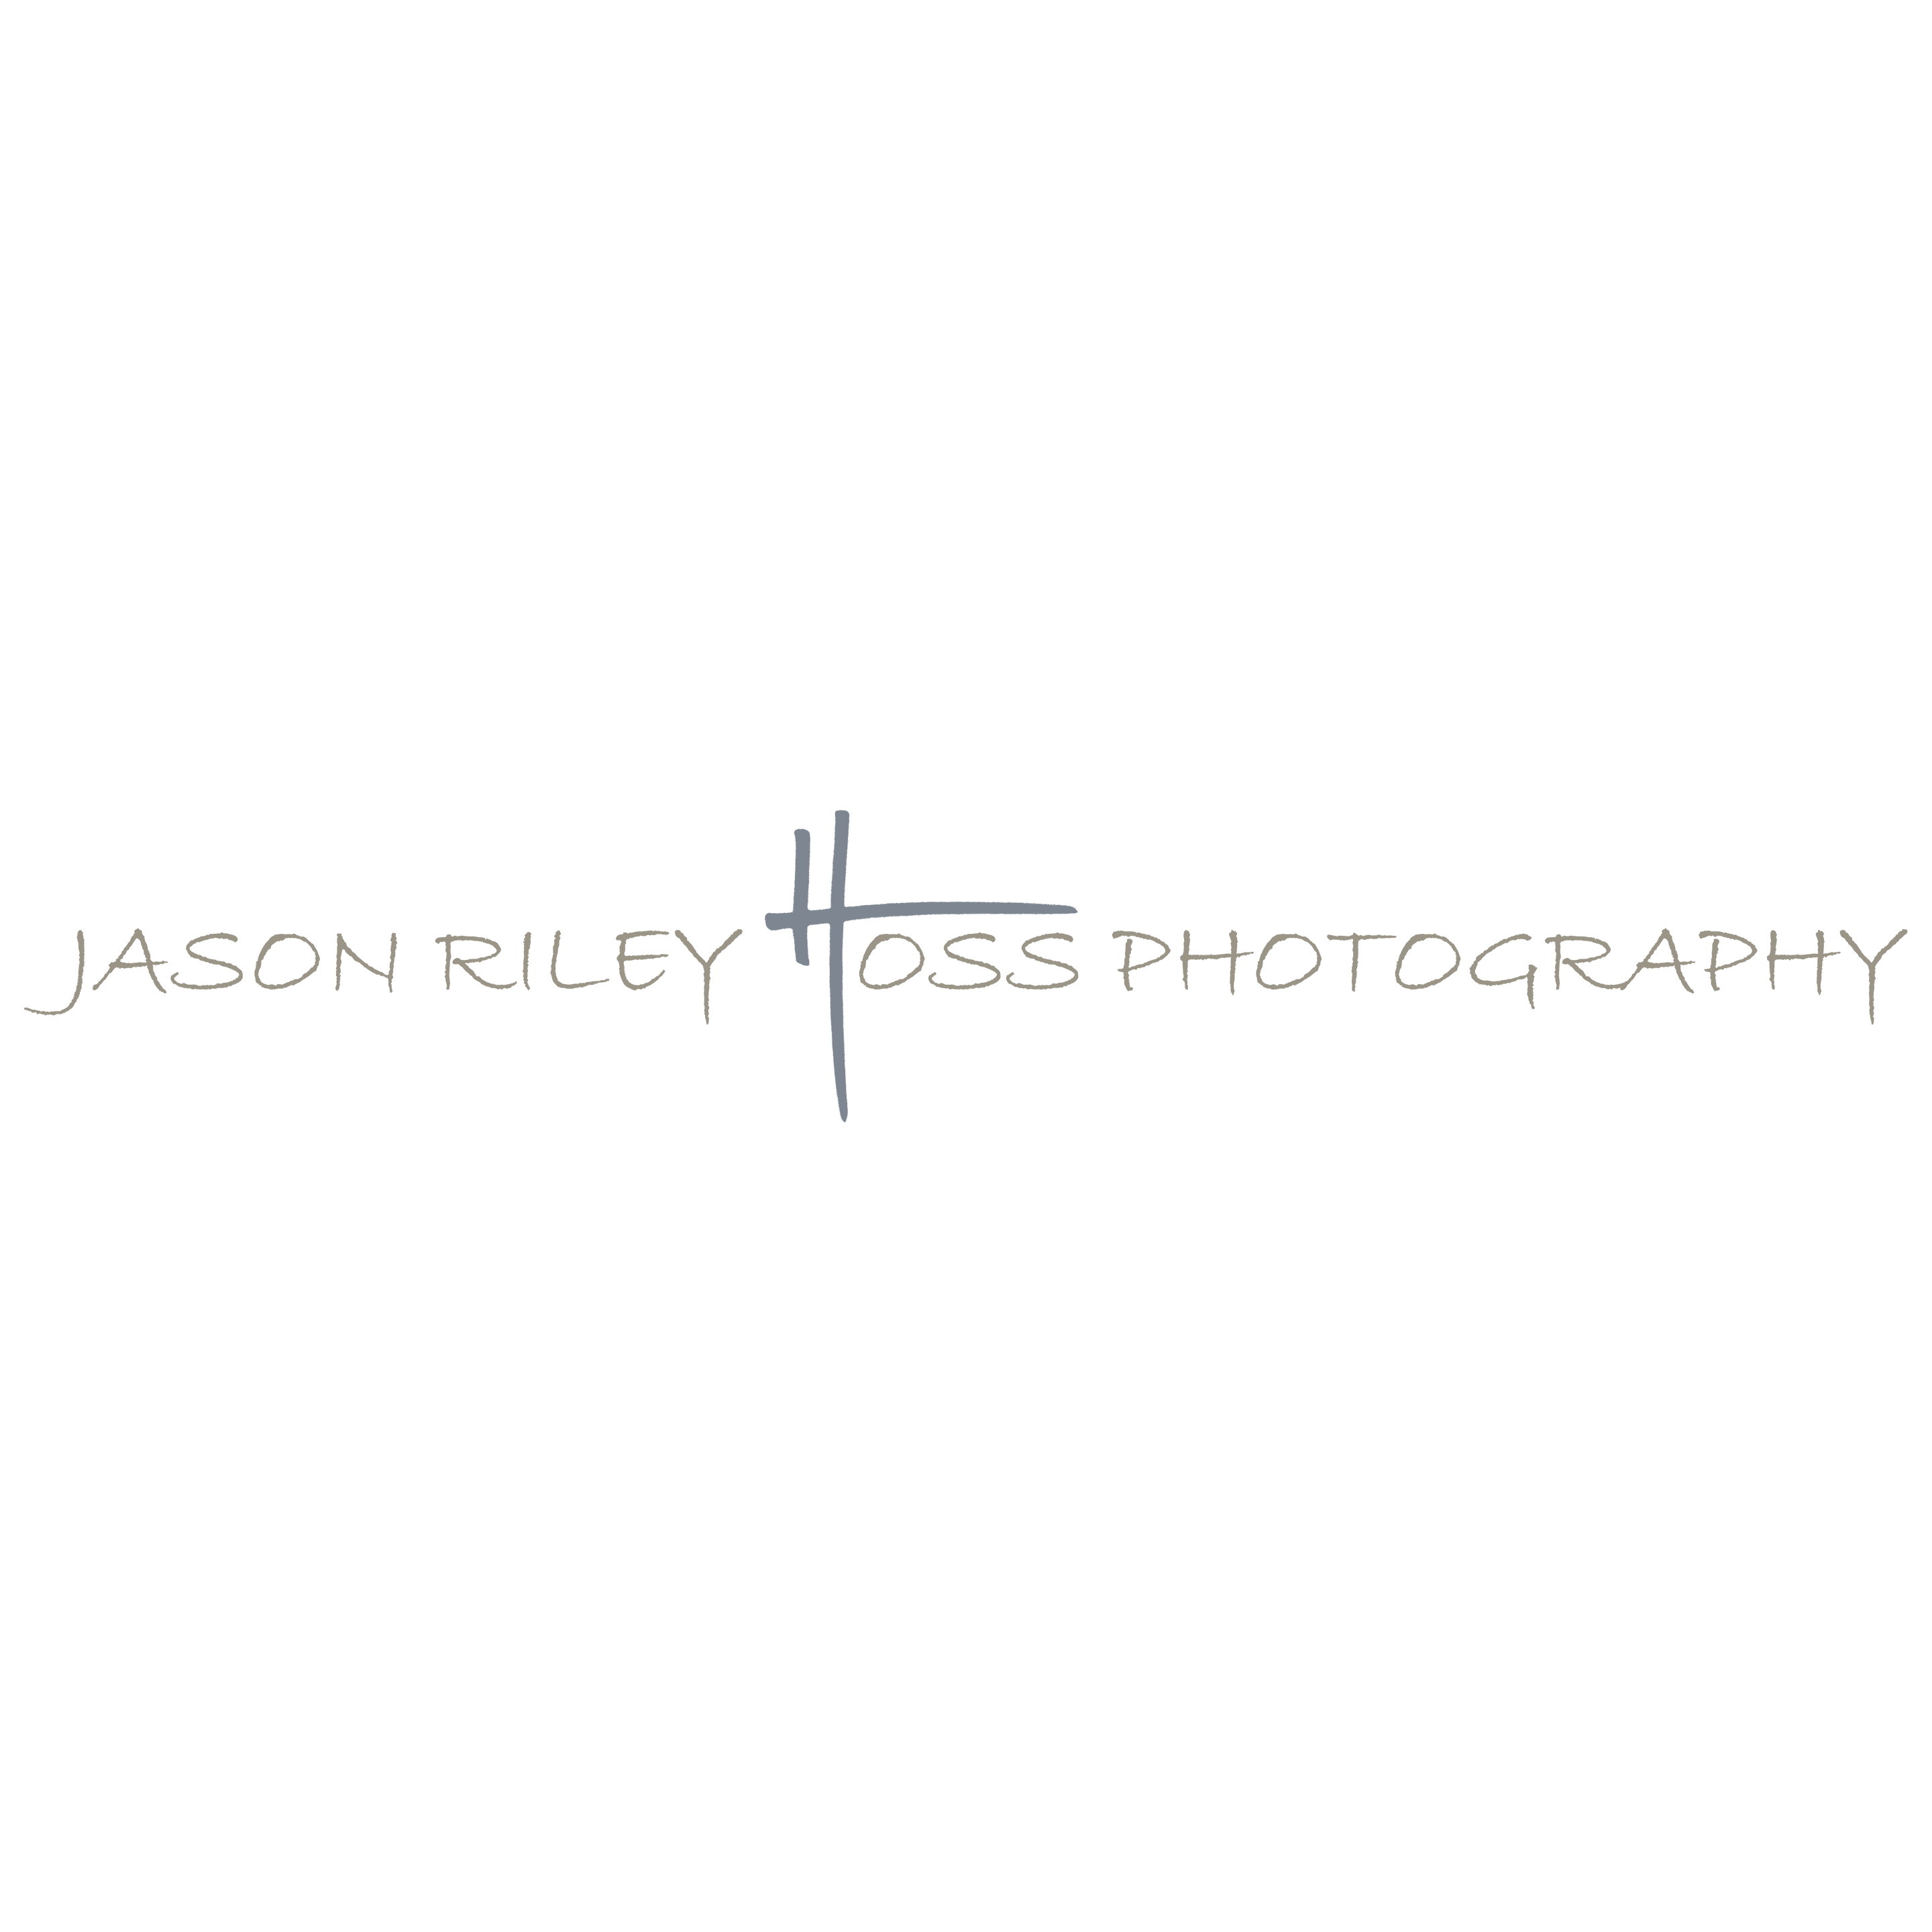 Jason Riley Hoss Photography